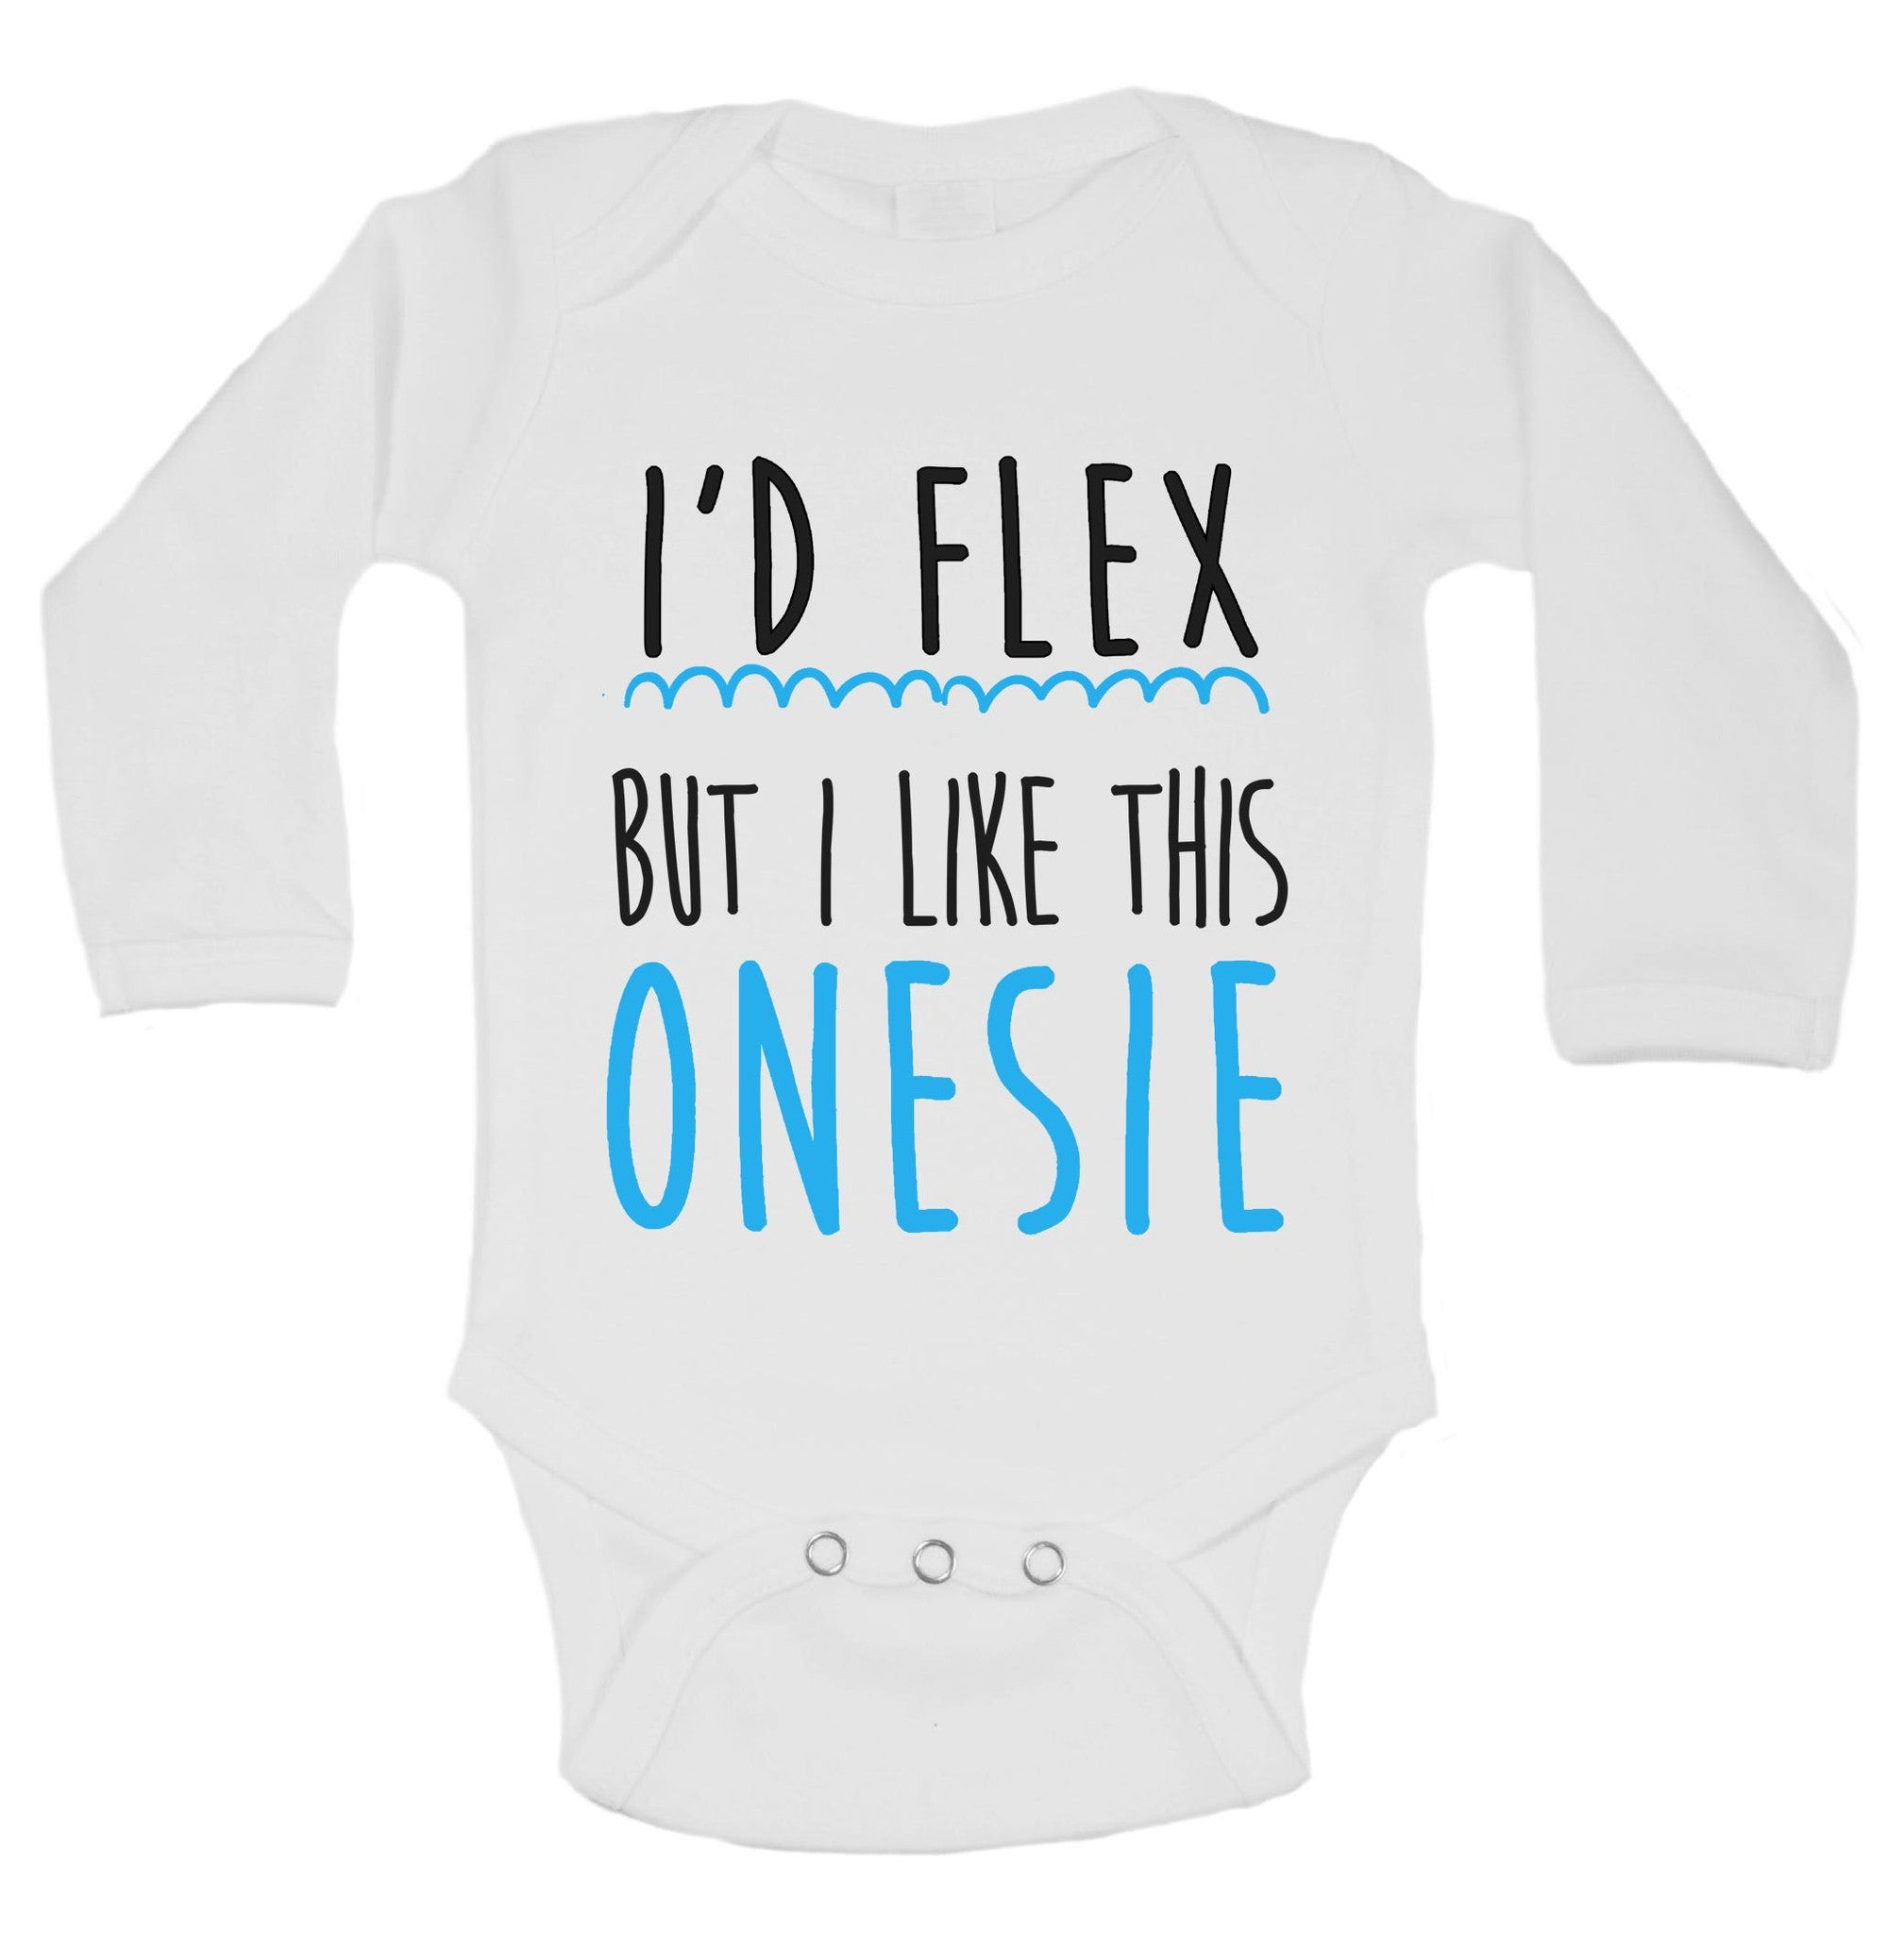 I'd Flex But I Like This Onesie Funny Kids Onesie - B146 - Funny Shirts Tank Tops Burnouts and Triblends  - 1